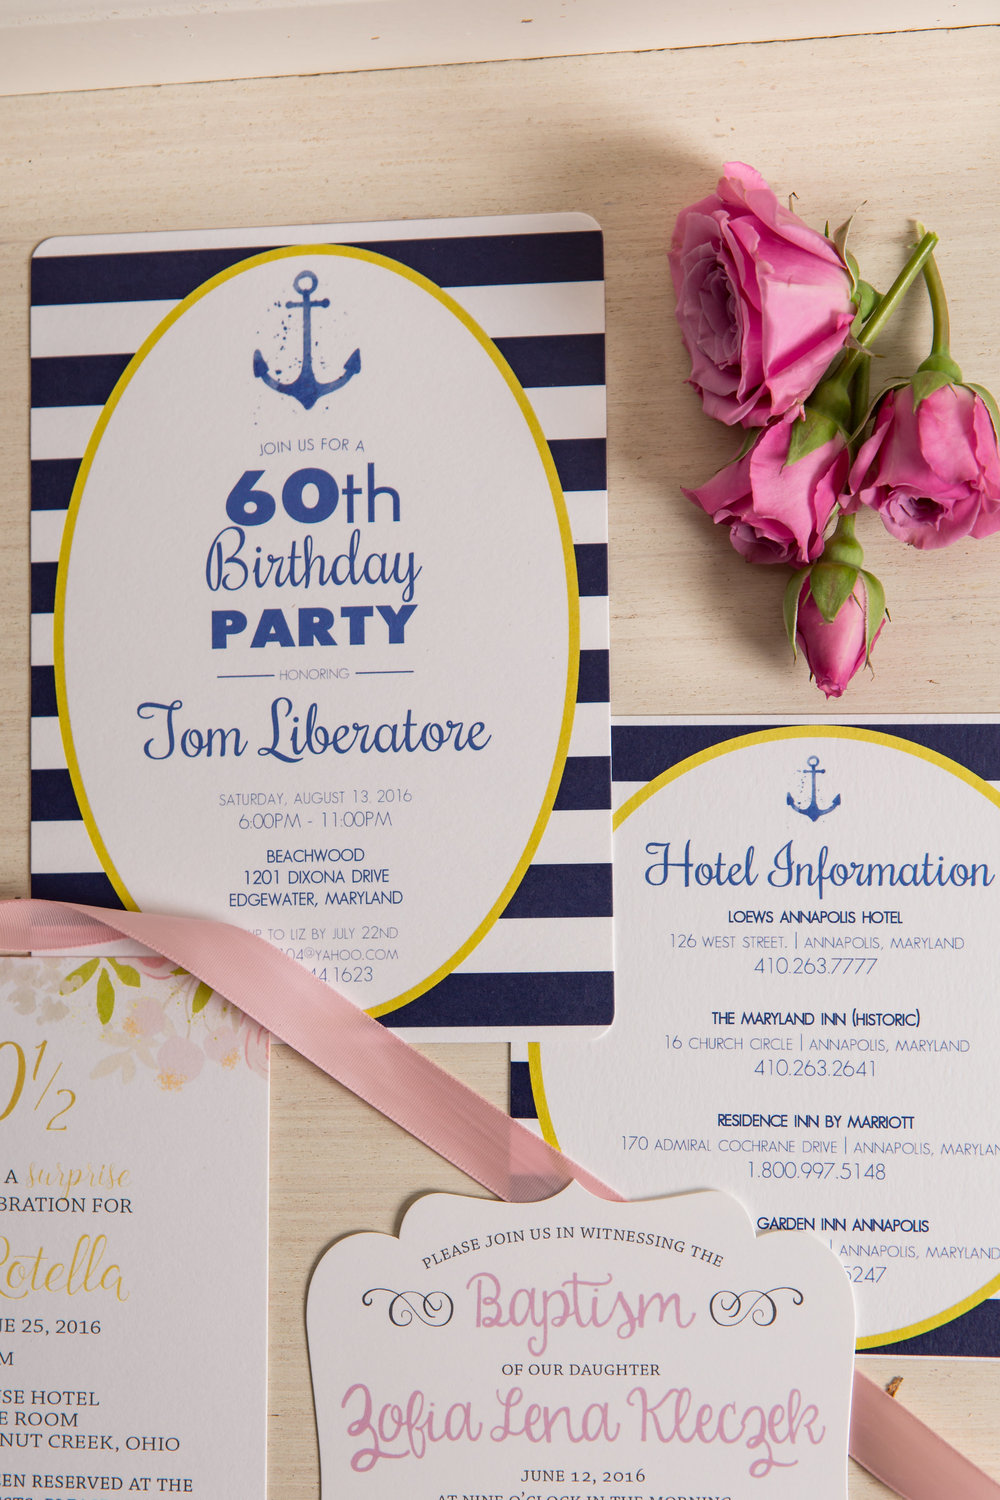 Invitations for parties and events can be designed to fit a multitude of party themes and events!